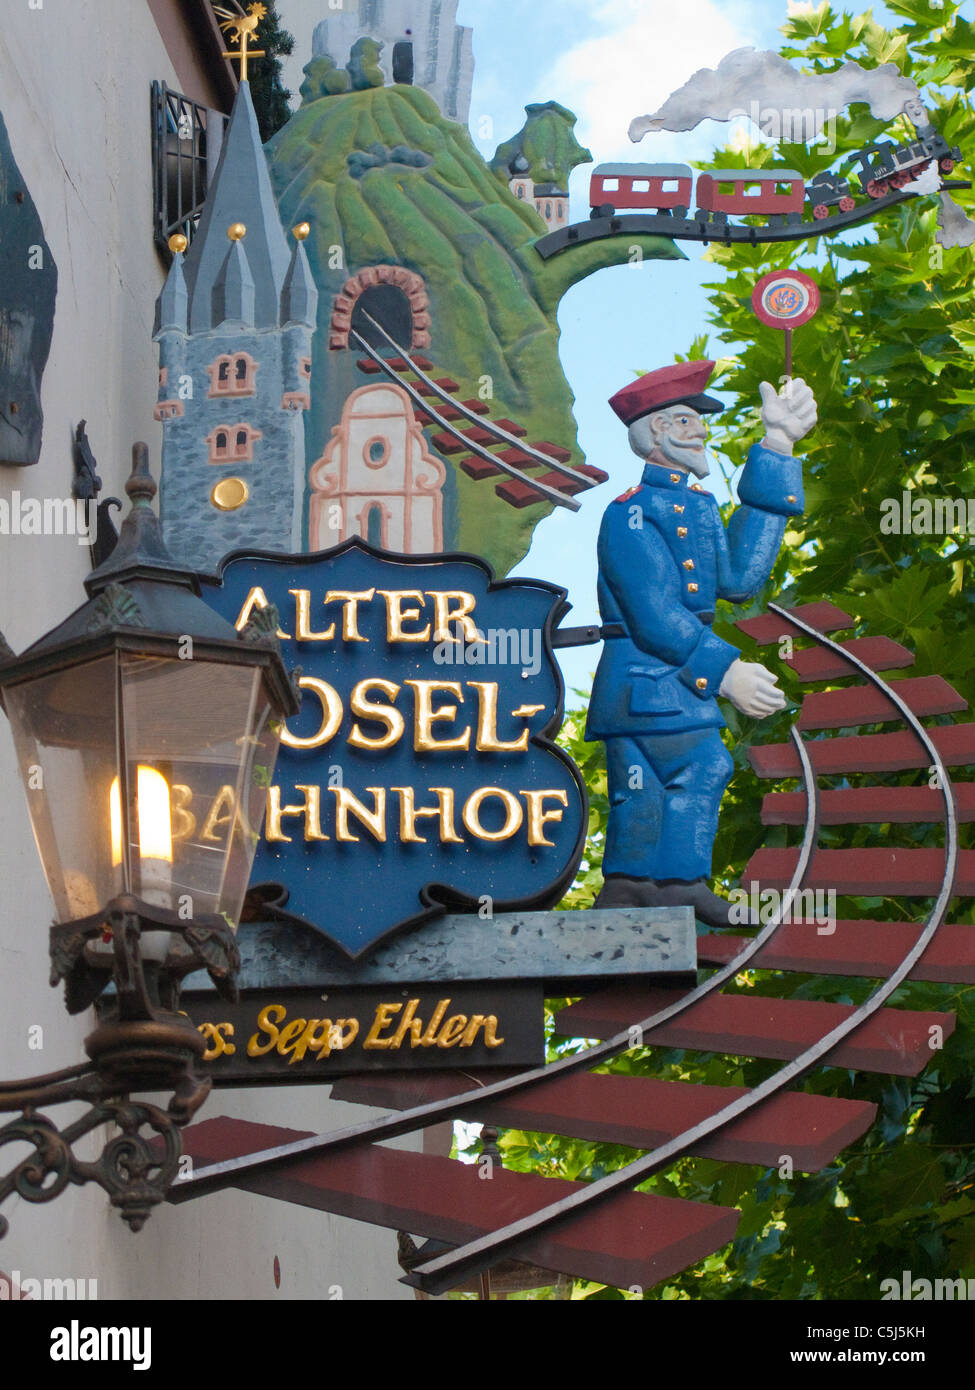 Detail, Wirtshausschild am Eingang zur Gaststaette Alter Mosel-Bahnhof, Mosel, sign at a pub, Moselle Stock Photo